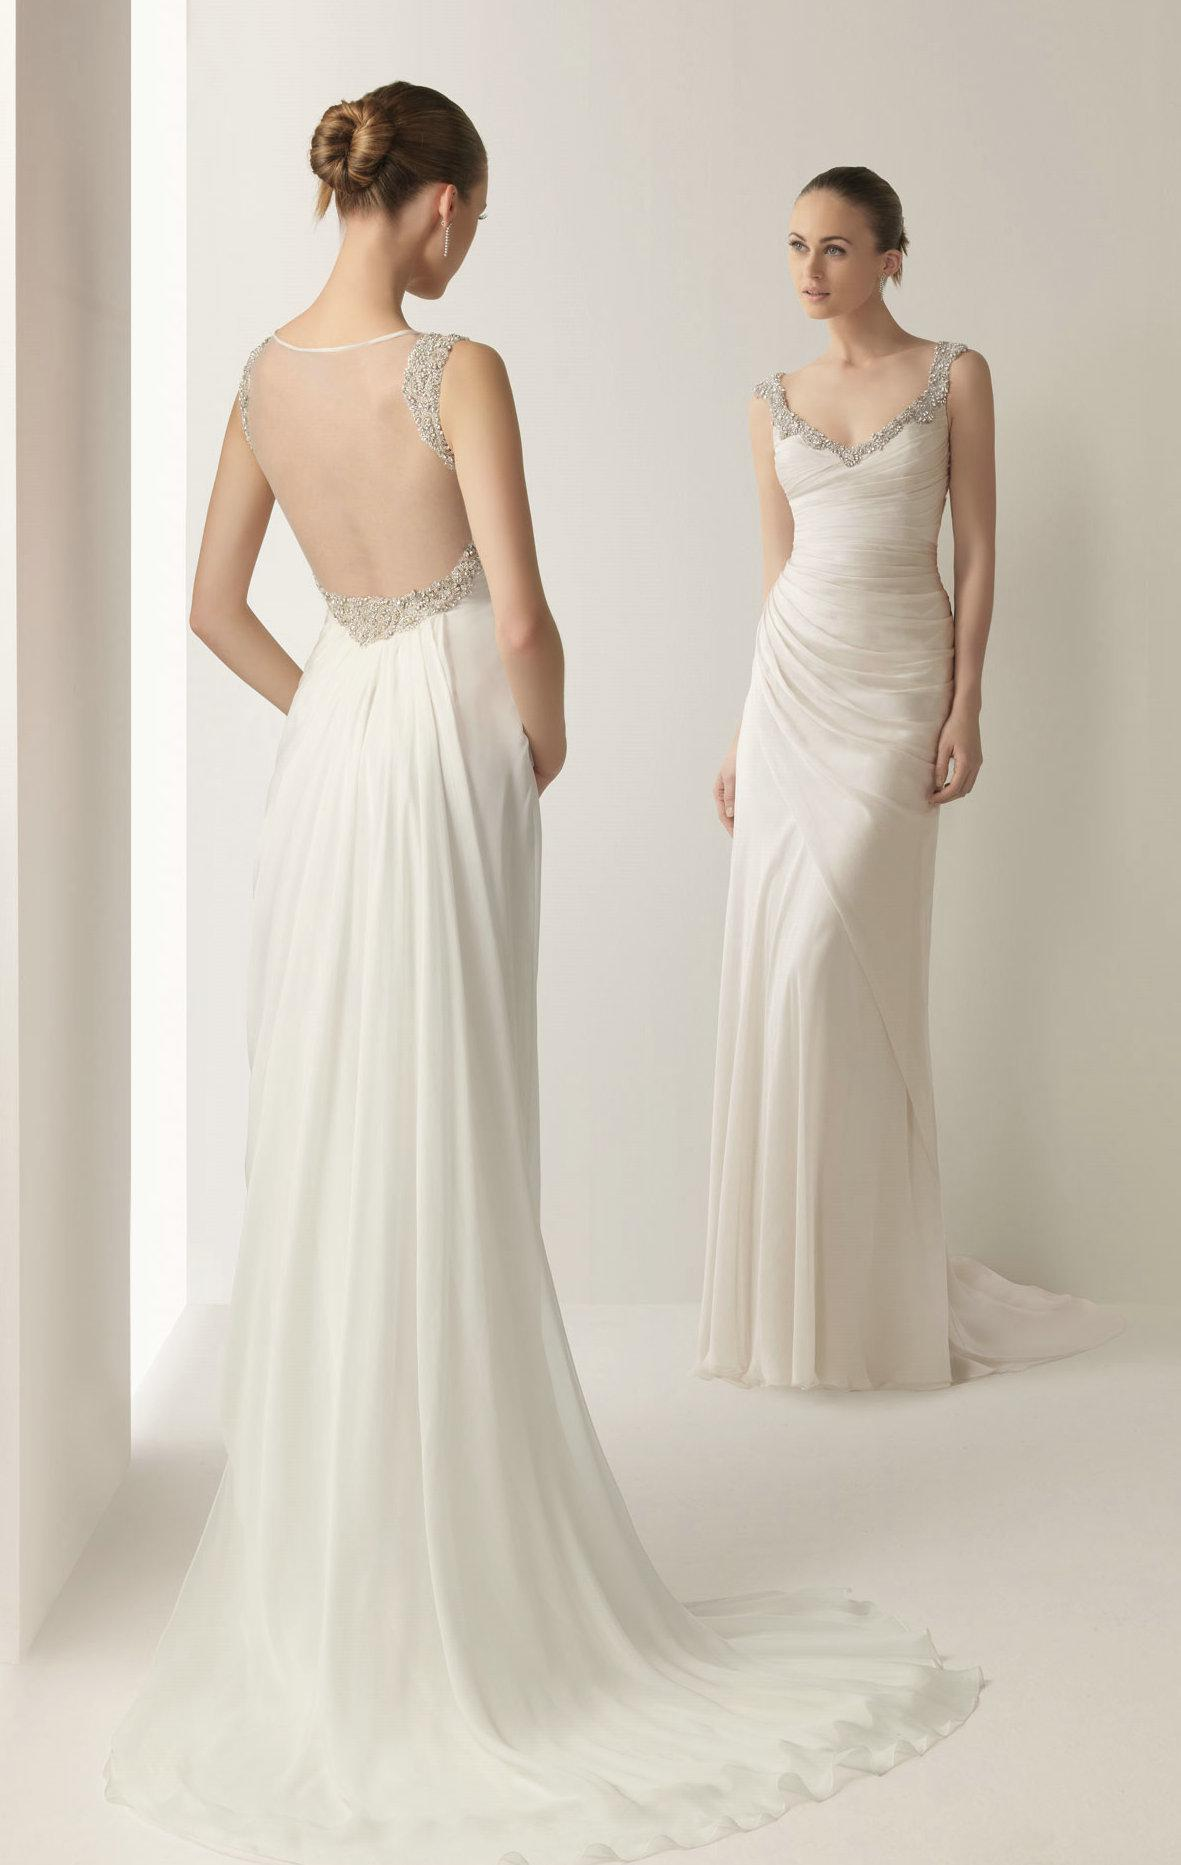 Sheath Backless Wedding Dresses